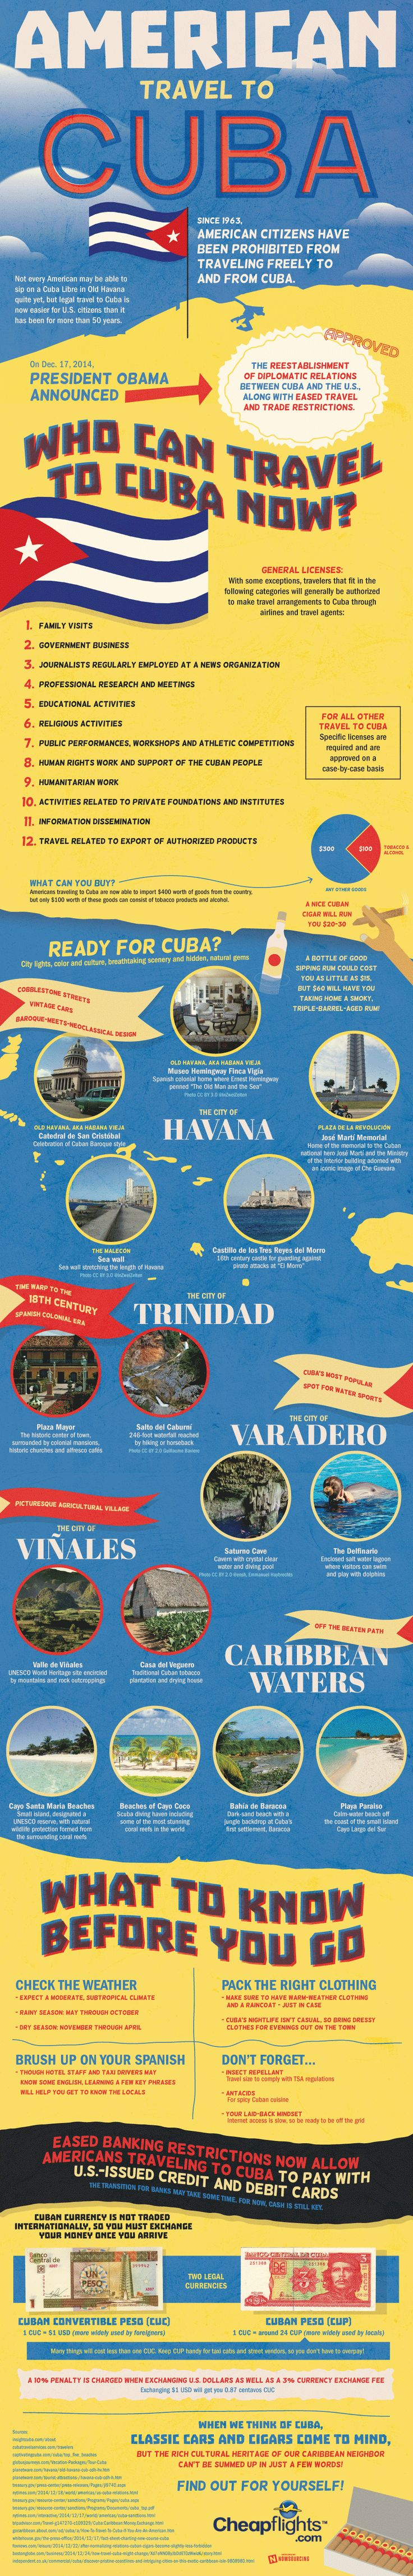 American Travel to Cuba #infographic